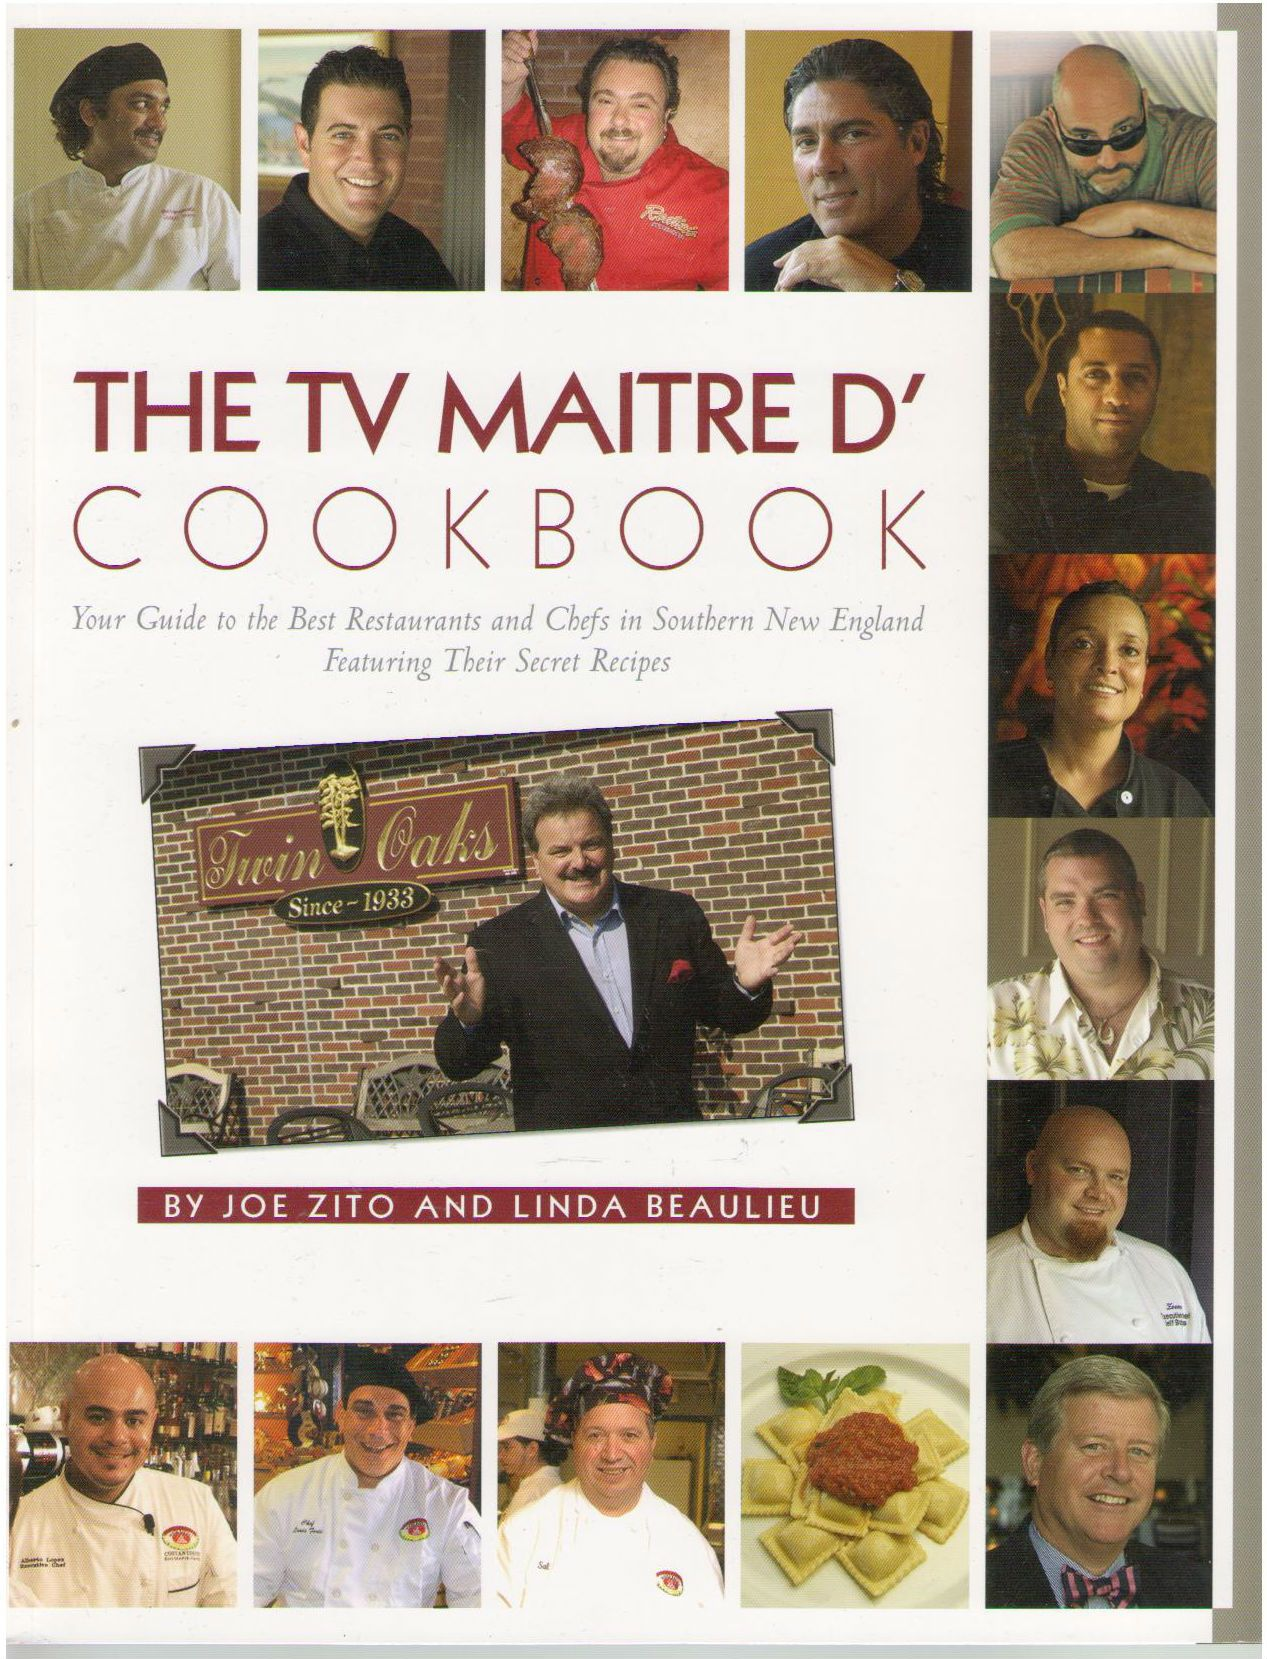 The TV Maitre d' Cookbook, Joe Zito and Linda Beaulieu